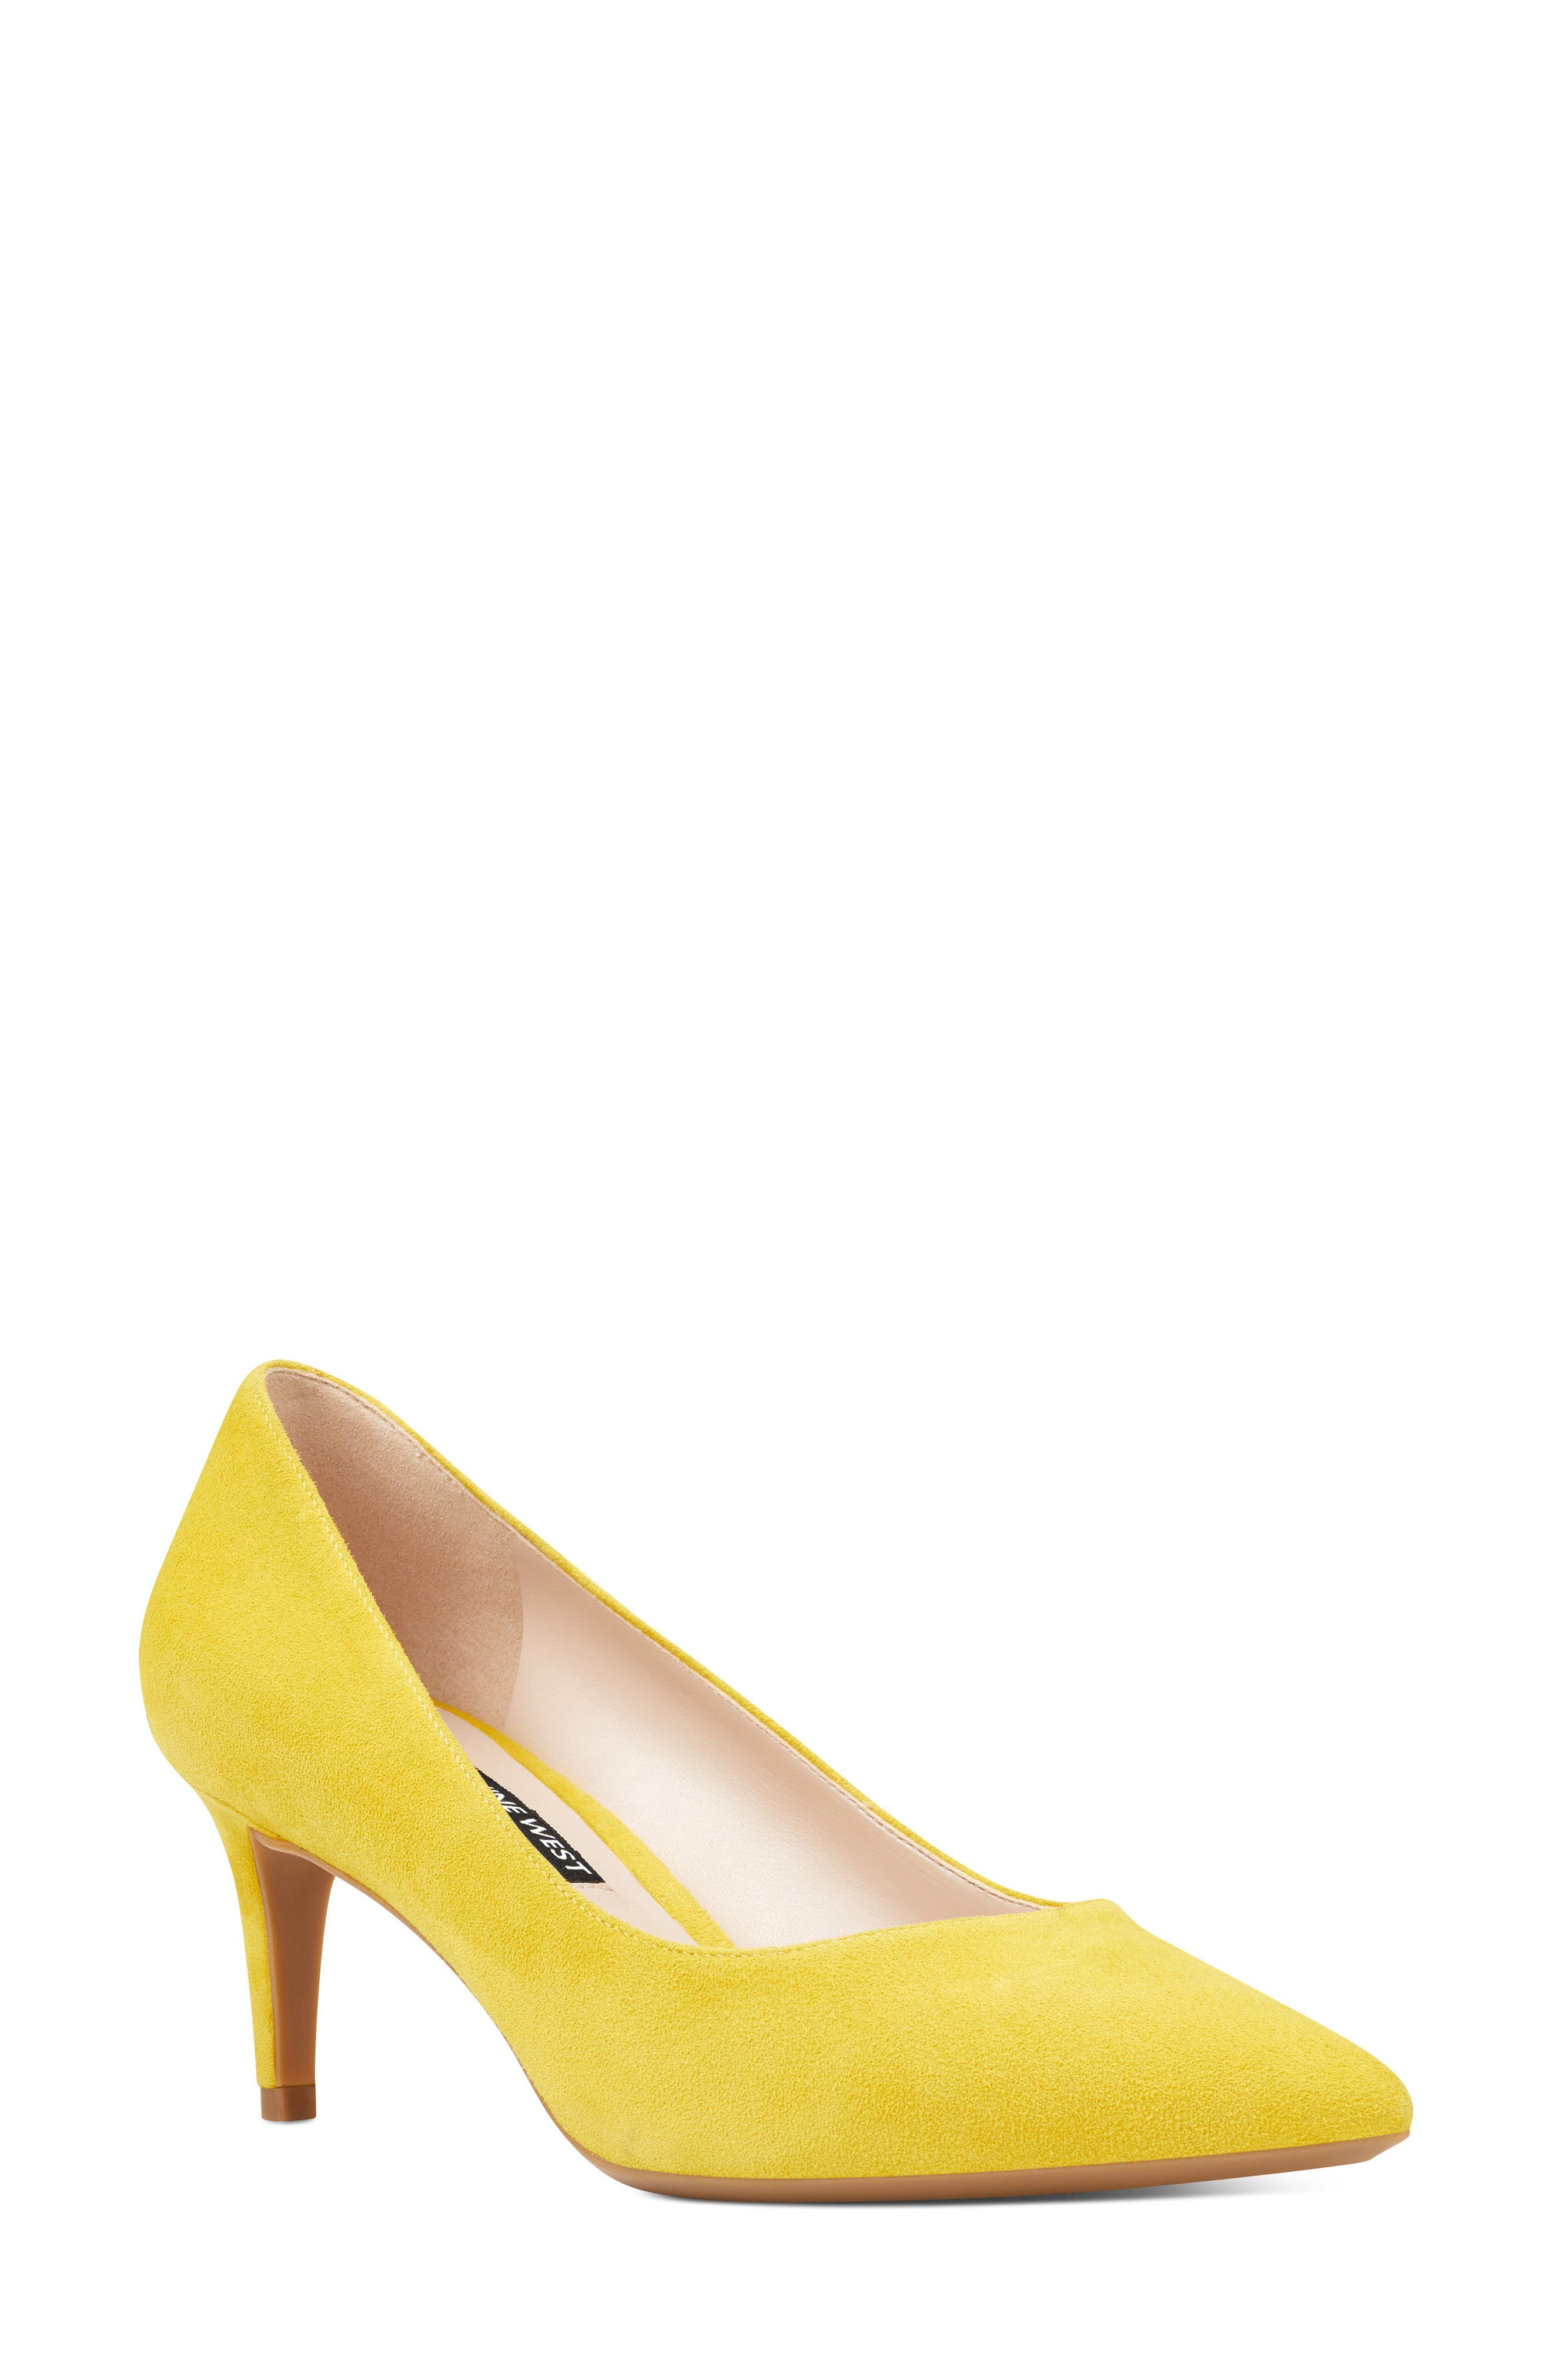 Soho Pointy Toe Pump,                         Main,                         color, YELLOW SUEDE